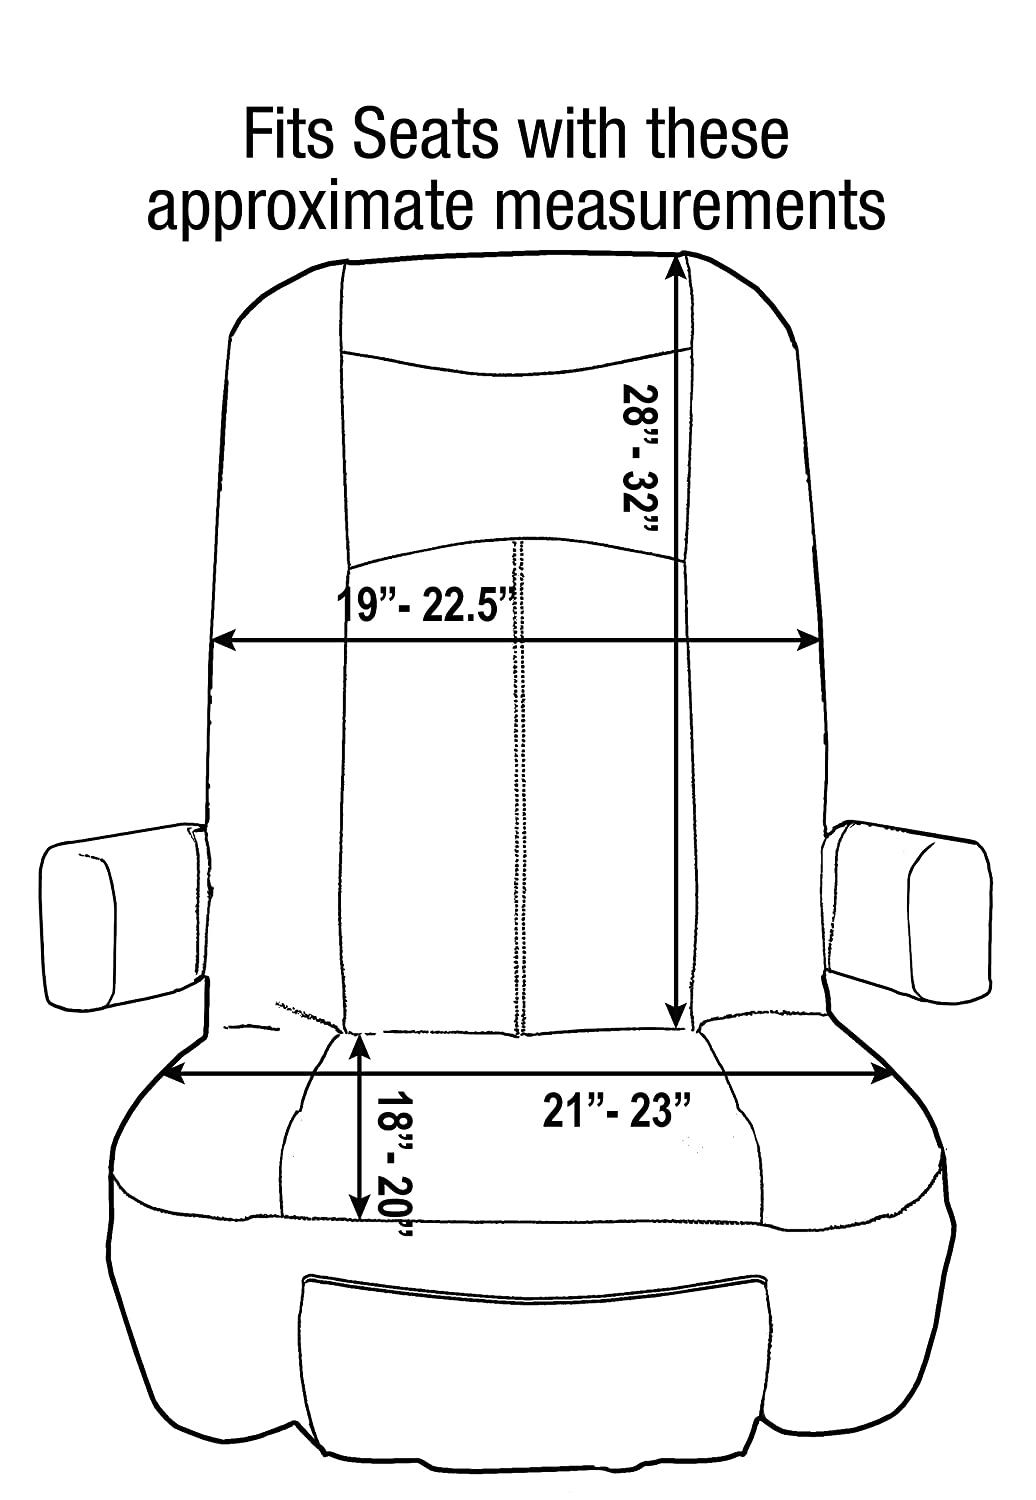 Double Pack Fits Most Seats Motorhome Seat Cover RV Designer C7957 GripFit